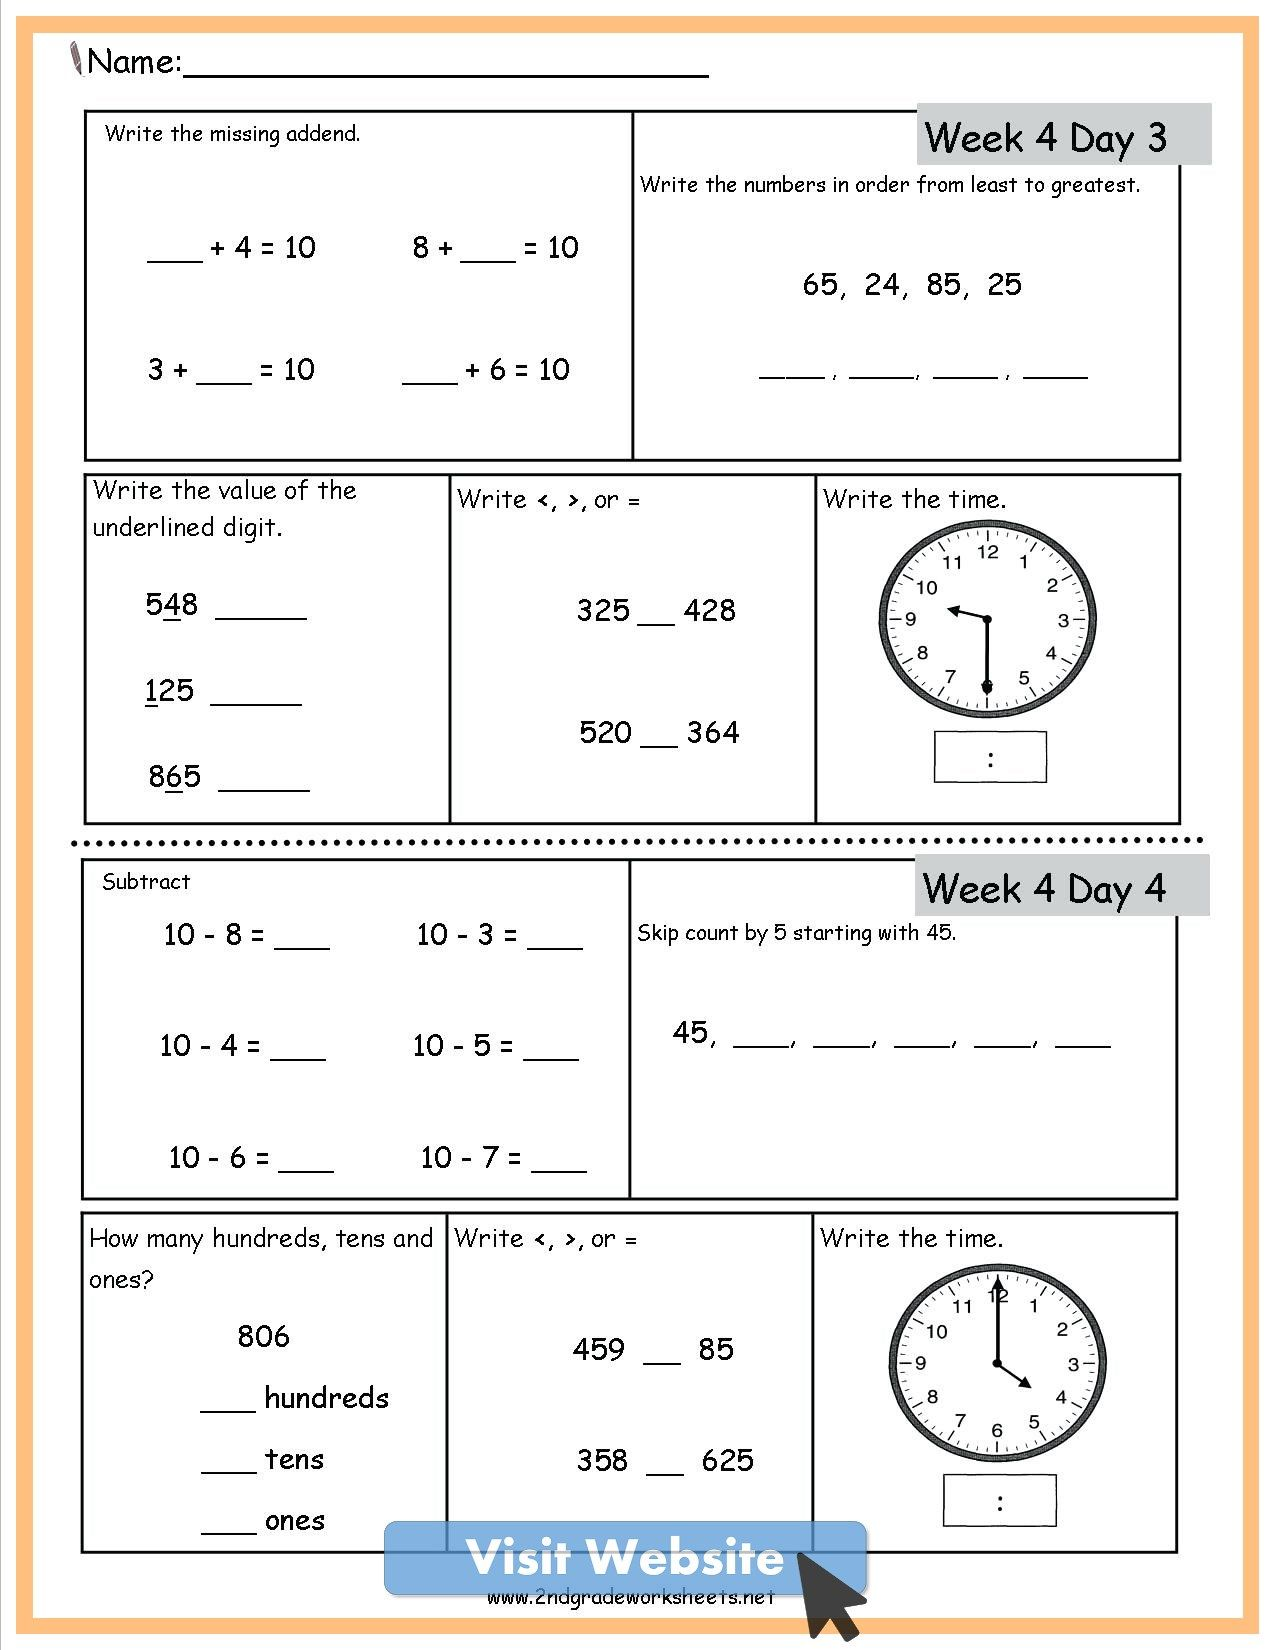 Math Worksheets 2nd Grade Free Math Review Worksheets 2nd Grade Math Worksheets Math Practice Worksheets